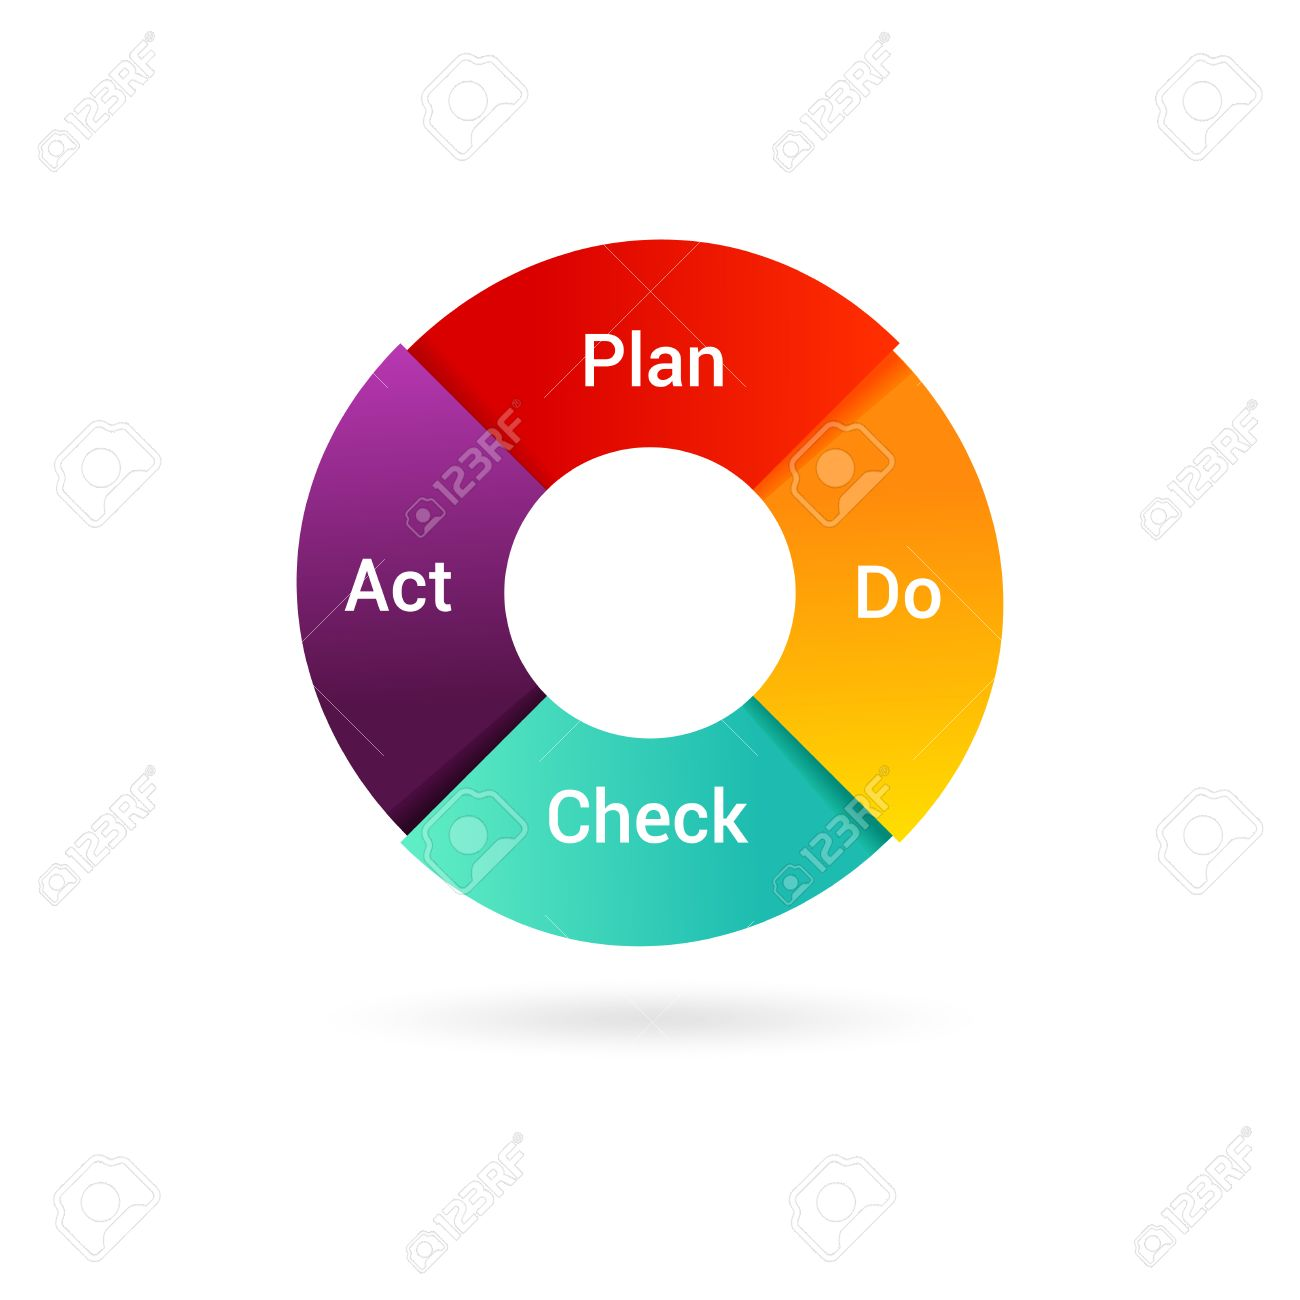 isolated pdca cycle diagram   management method  concept of    vector   isolated pdca cycle diagram   management method  concept of control and continuous improvement in business  plan do check act illustration